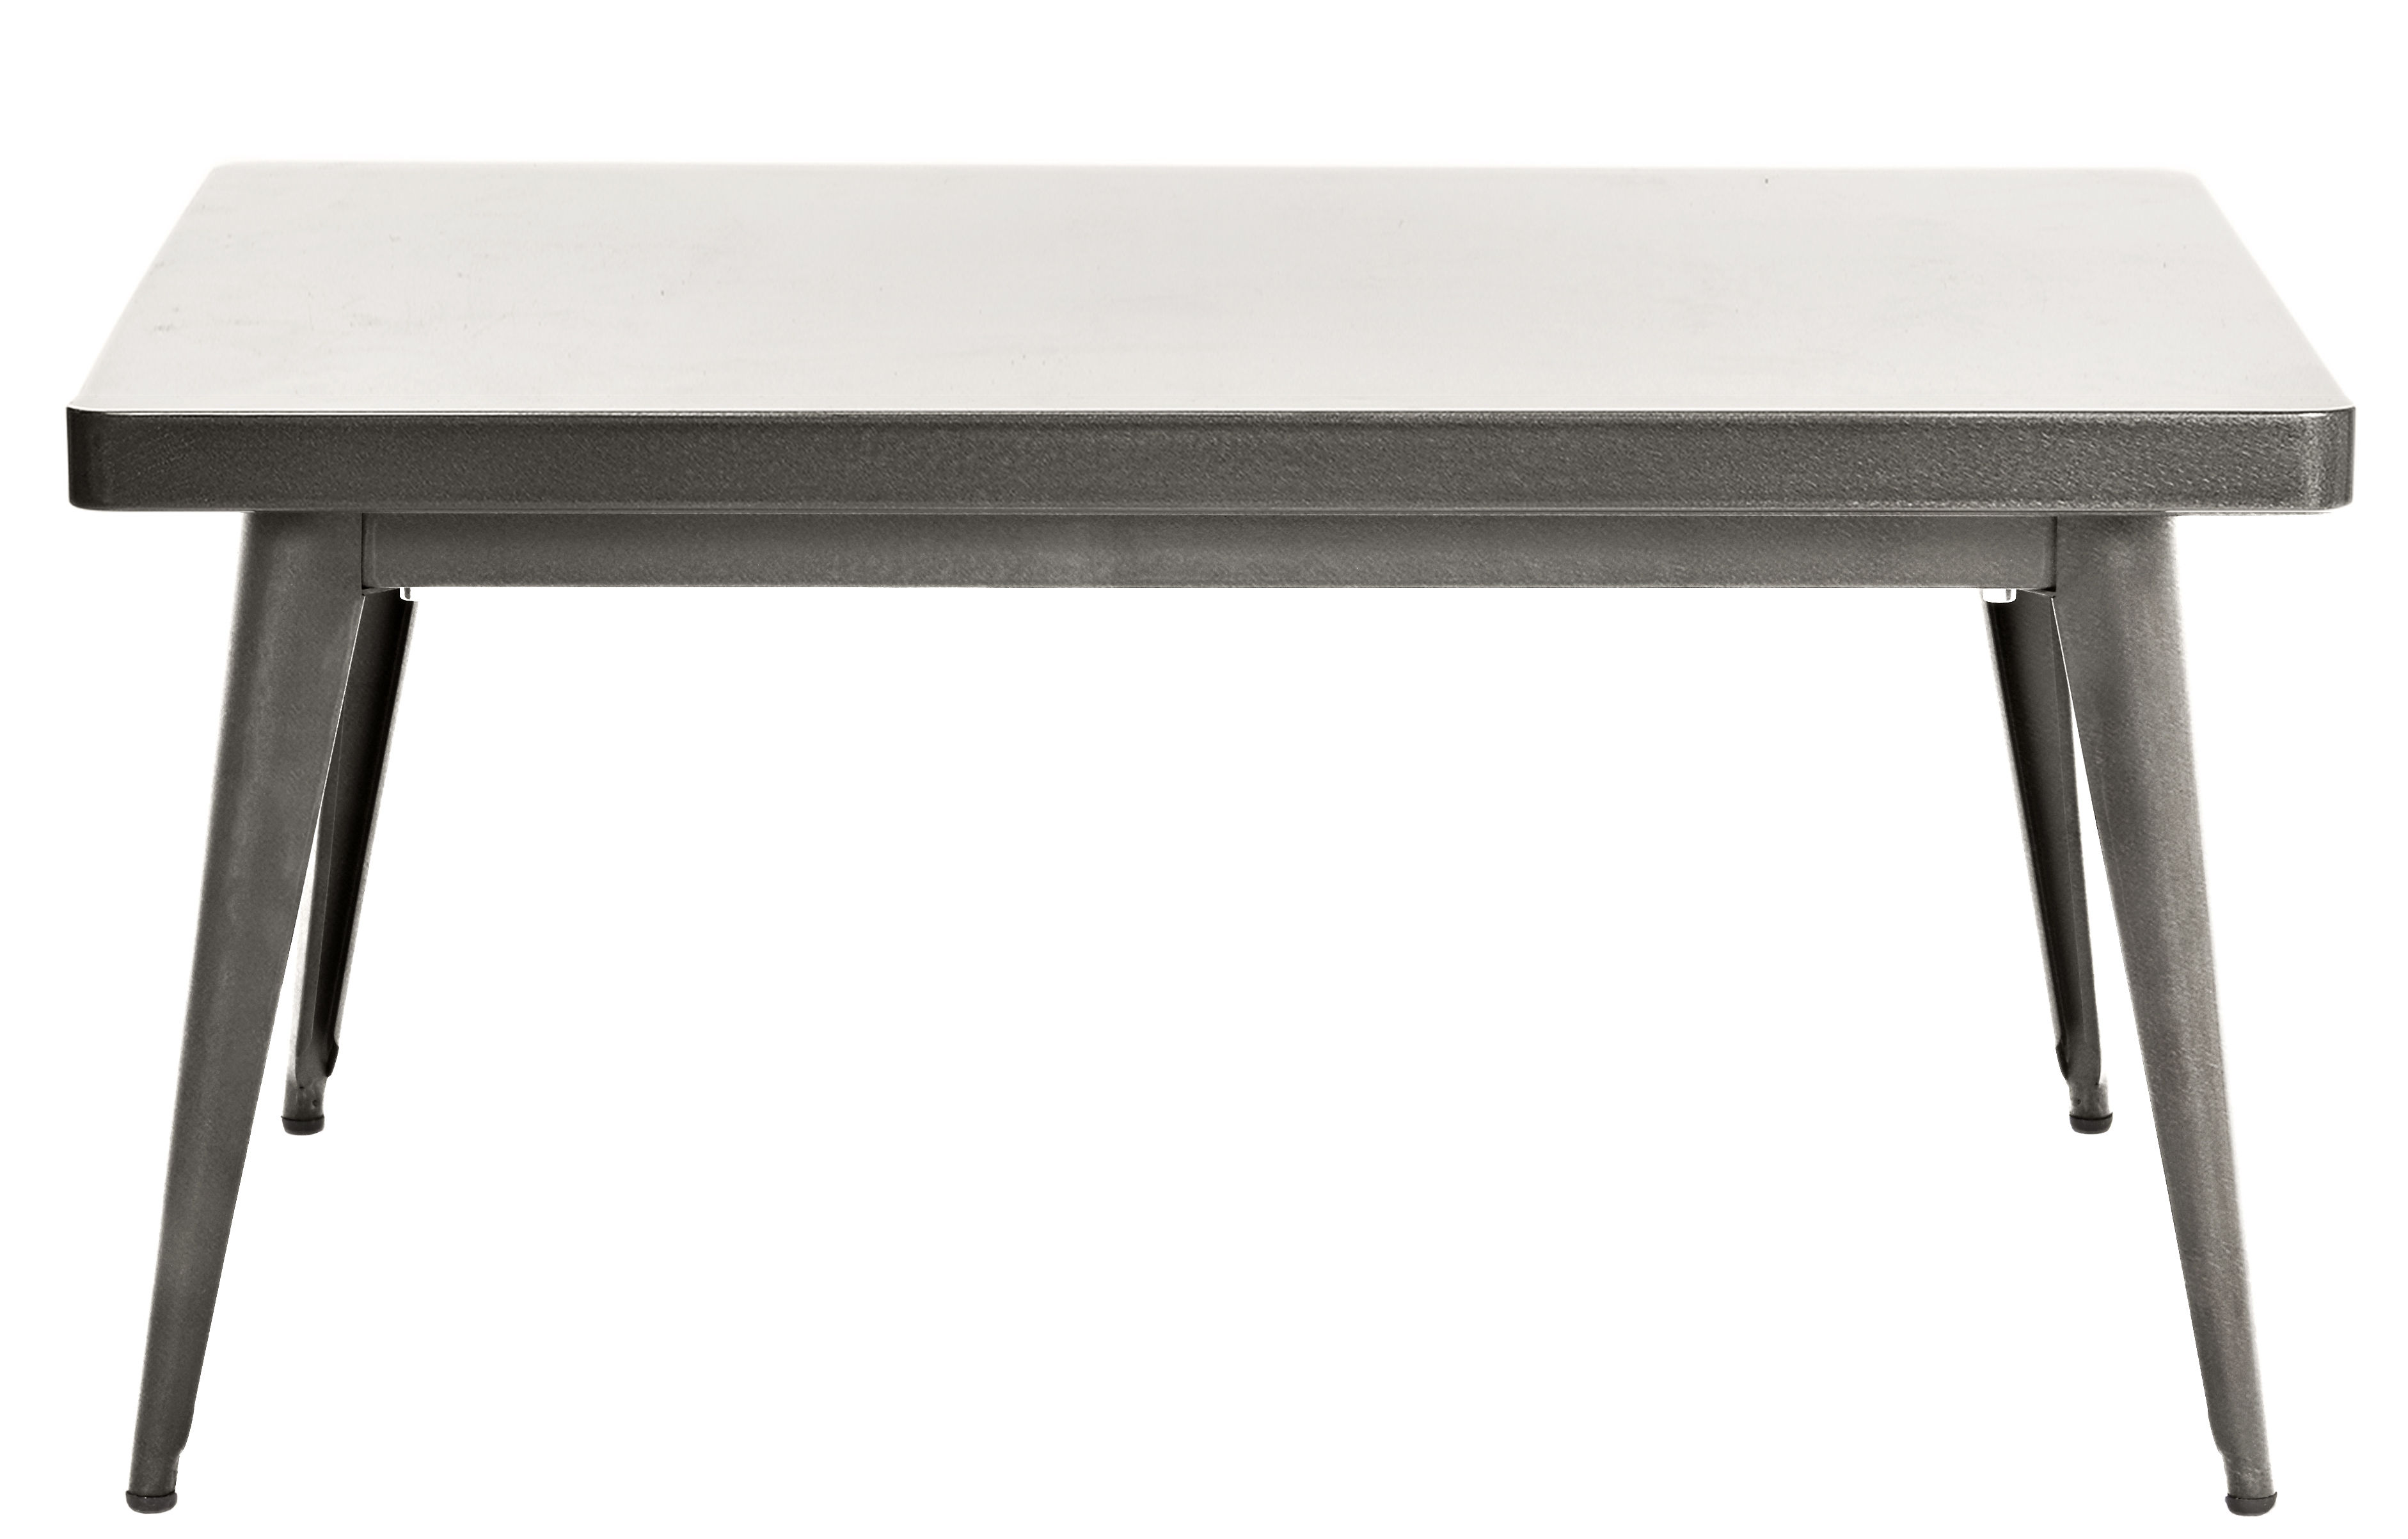 Furniture - Coffee Tables - 55 Coffee table by Tolix - Steel - Gloss varnish raw steel